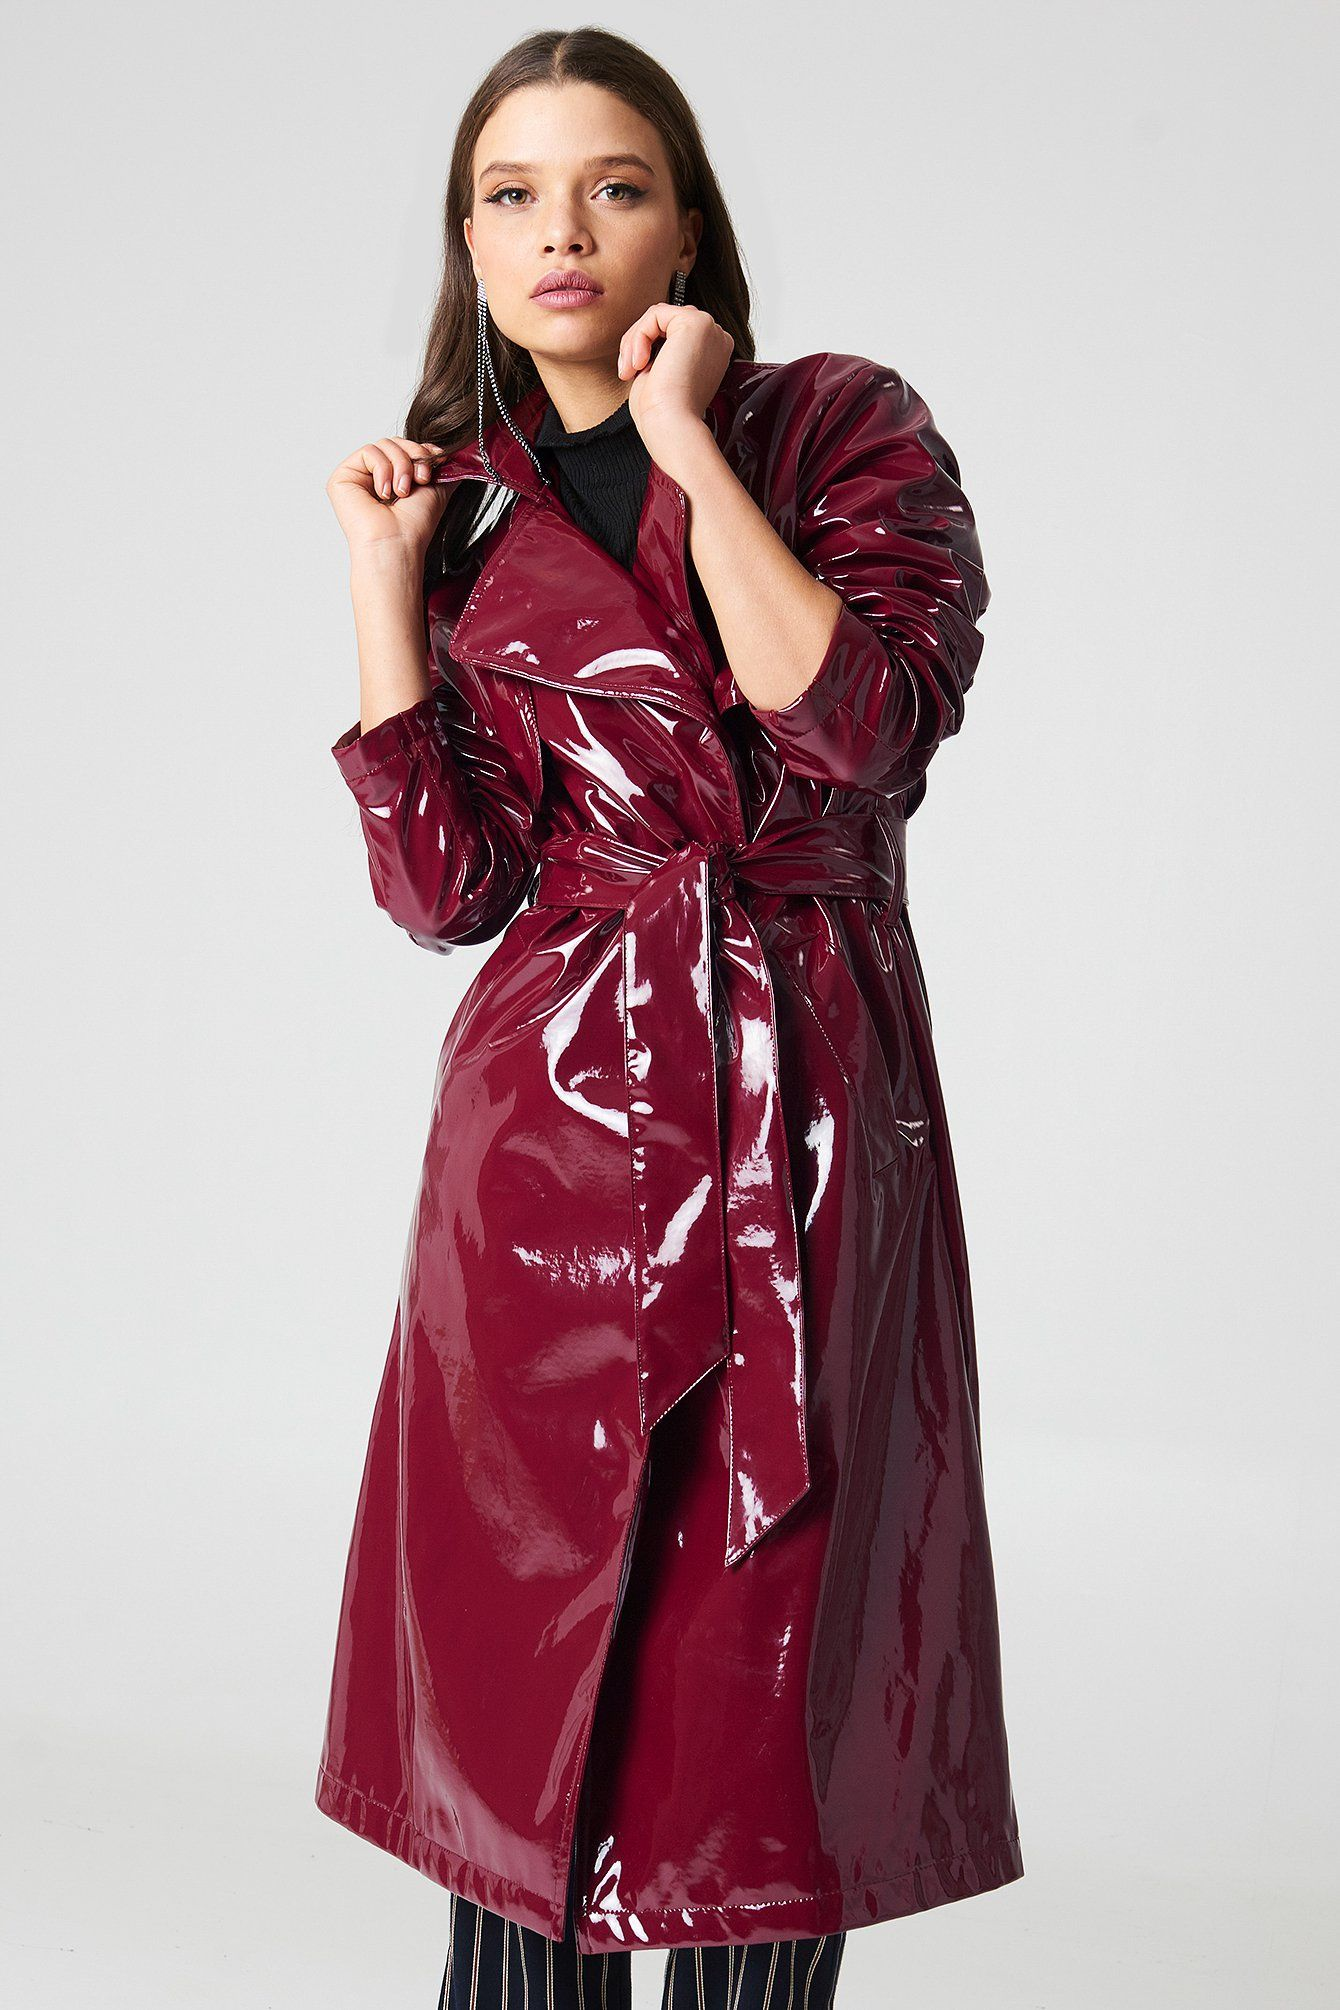 Patent Long Jacket Raincoats for women, Fashion, Red